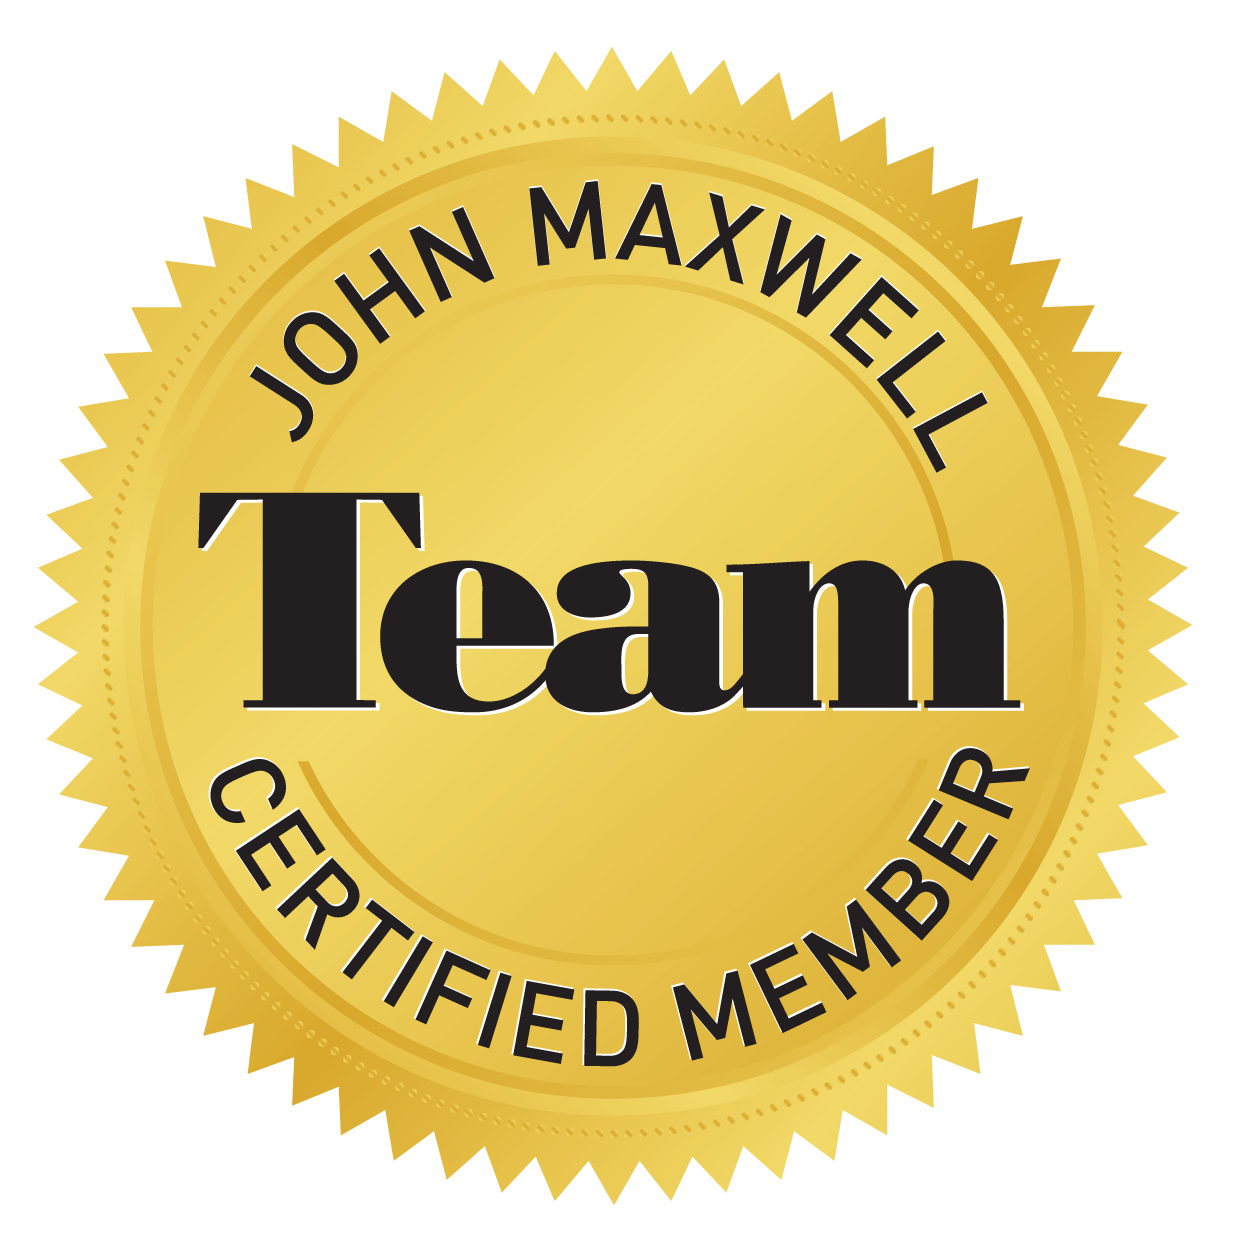 J. Israel Greene is a John Maxwell Team Certified Speaker